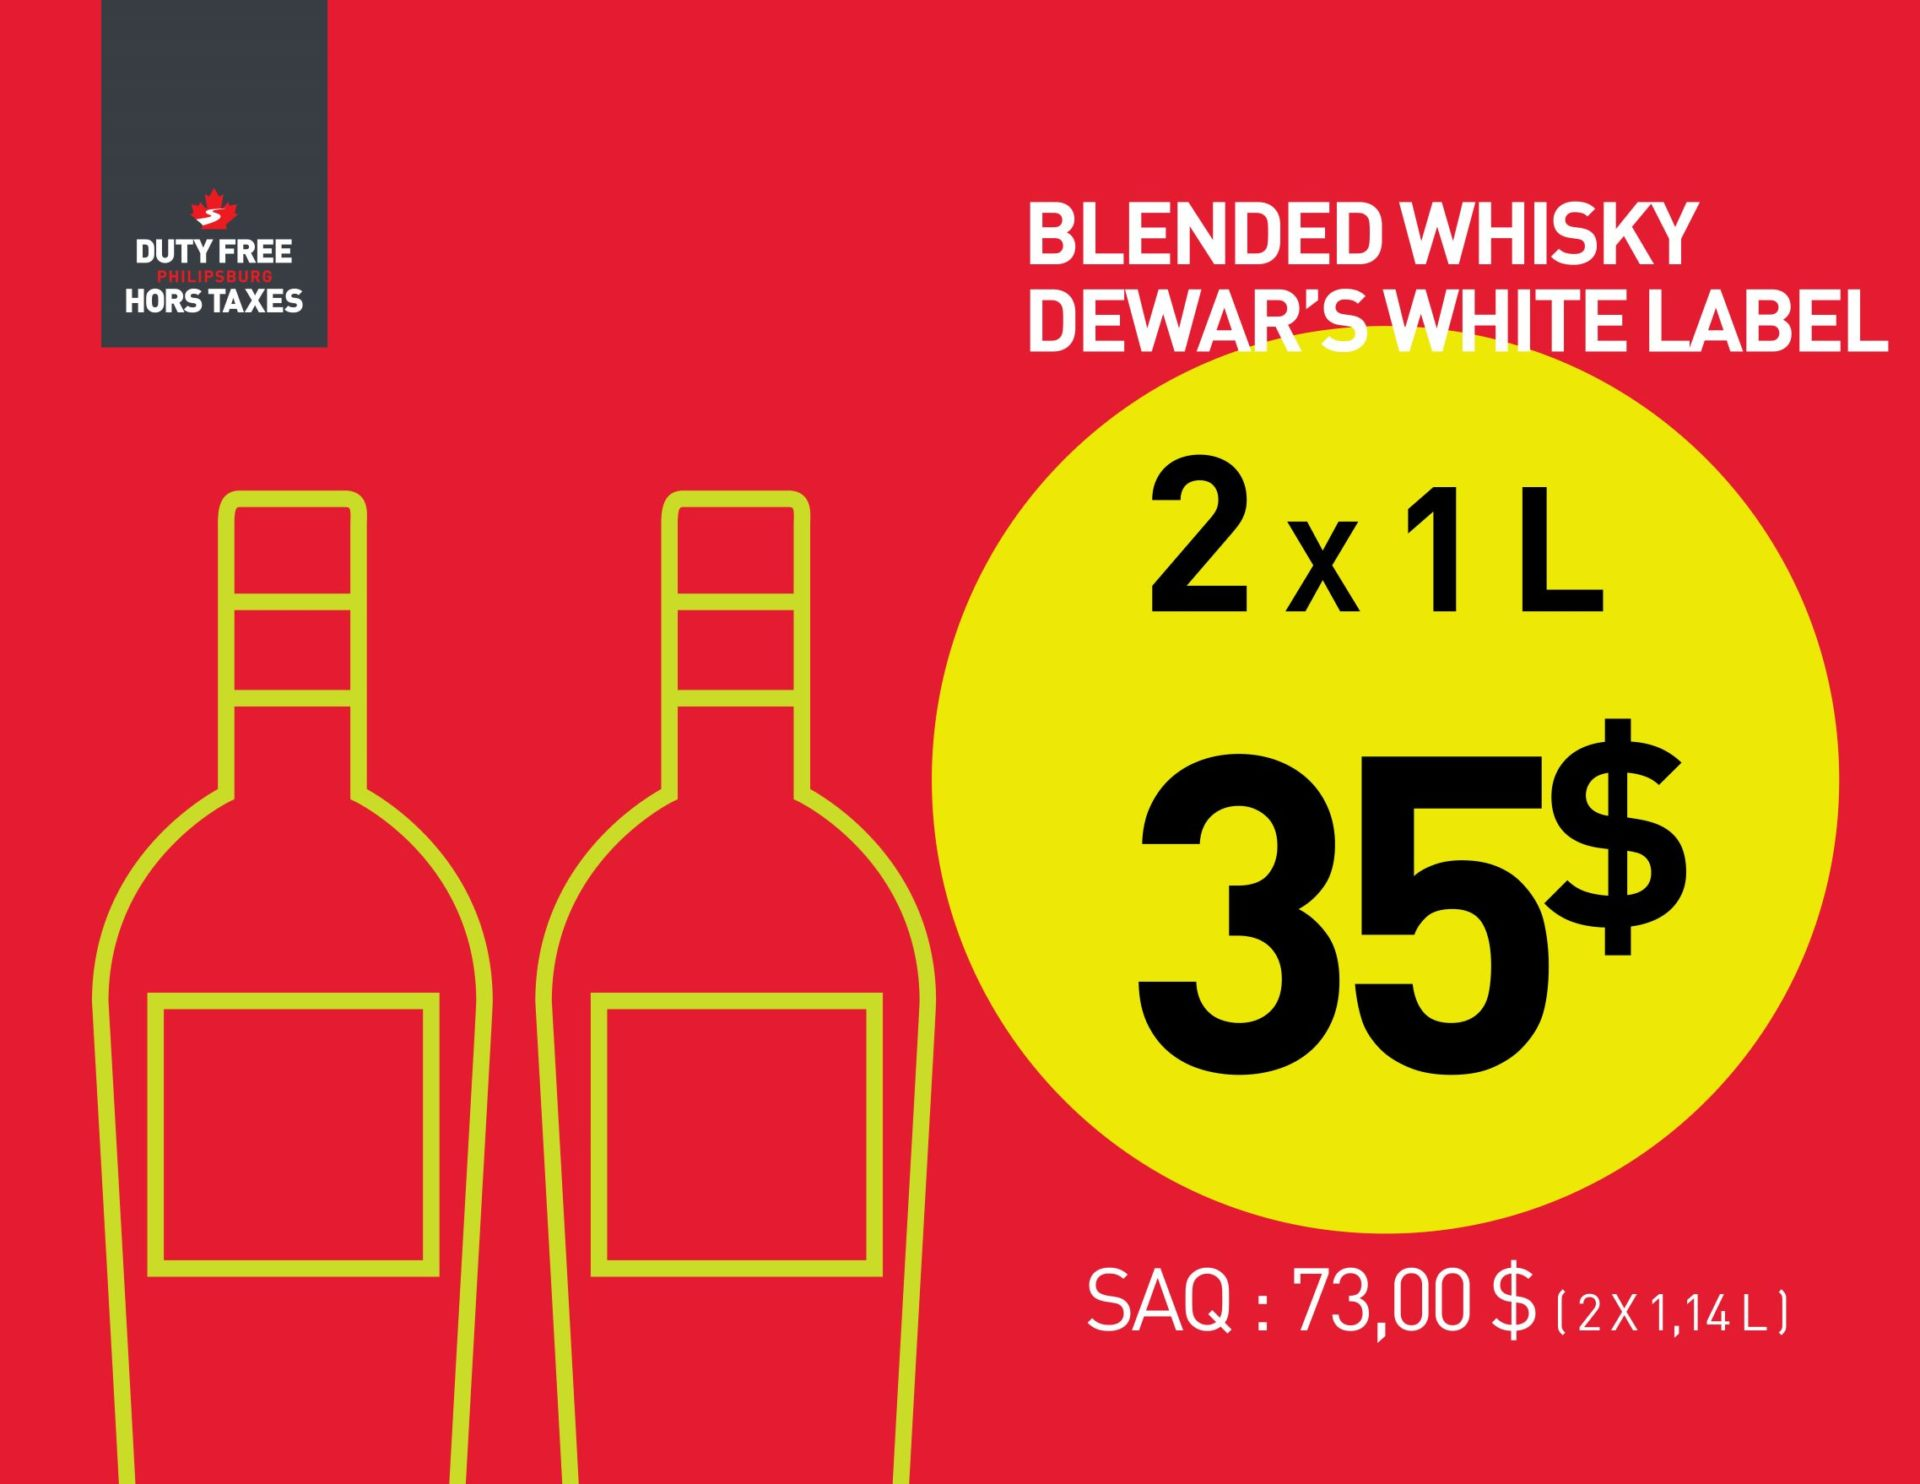 Dewar's White Label (2X1L)